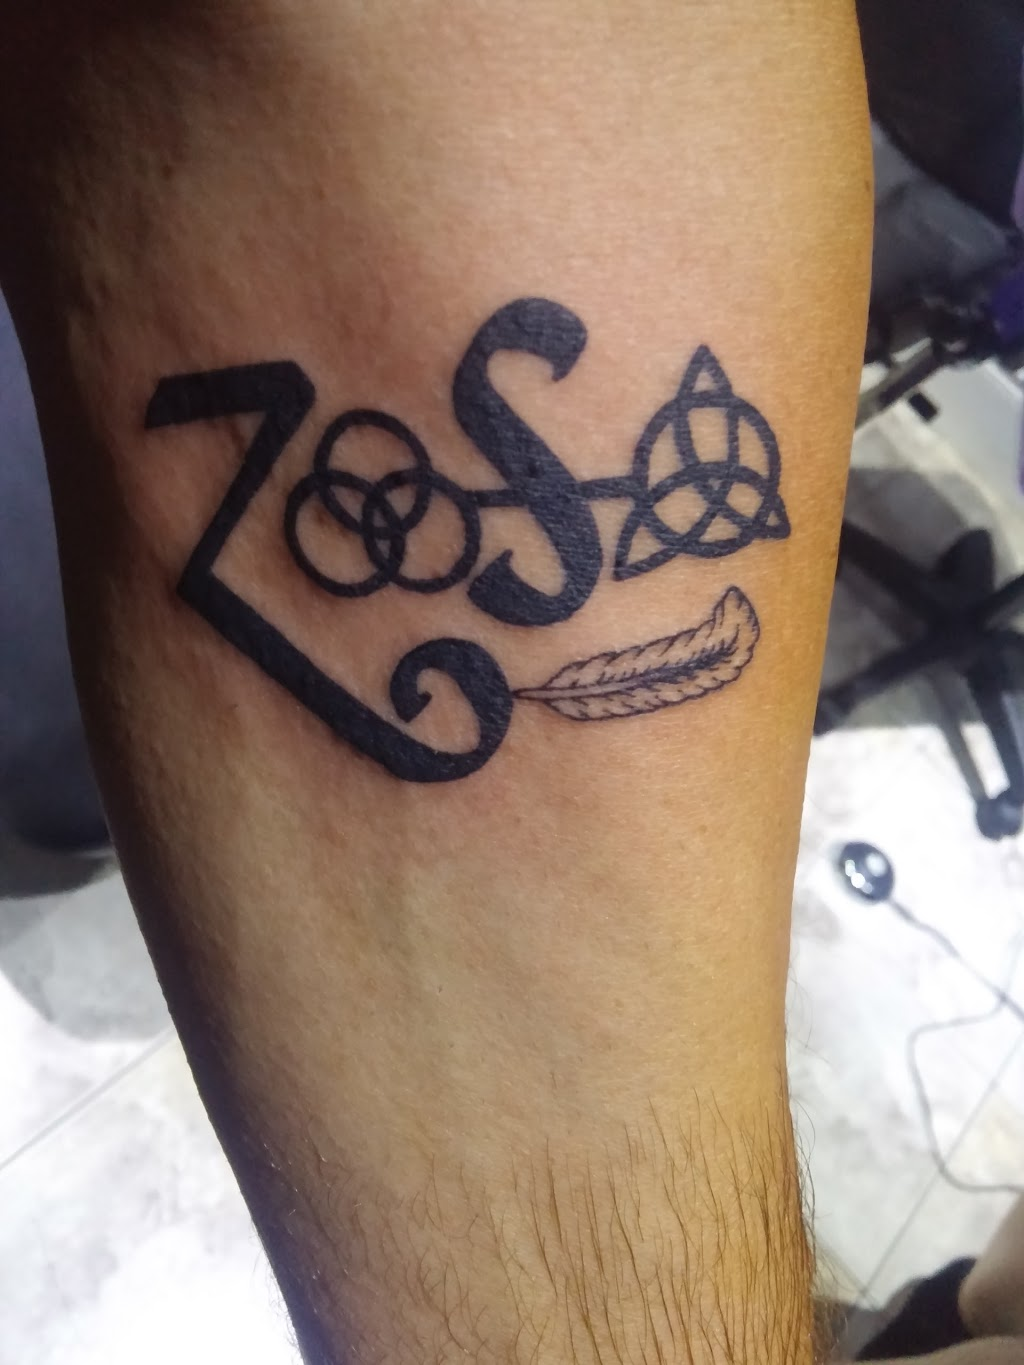 Kryptonian Ink   store   428 Concession St, Hamilton, ON L9A 1B9, Canada   9055226993 OR +1 905-522-6993